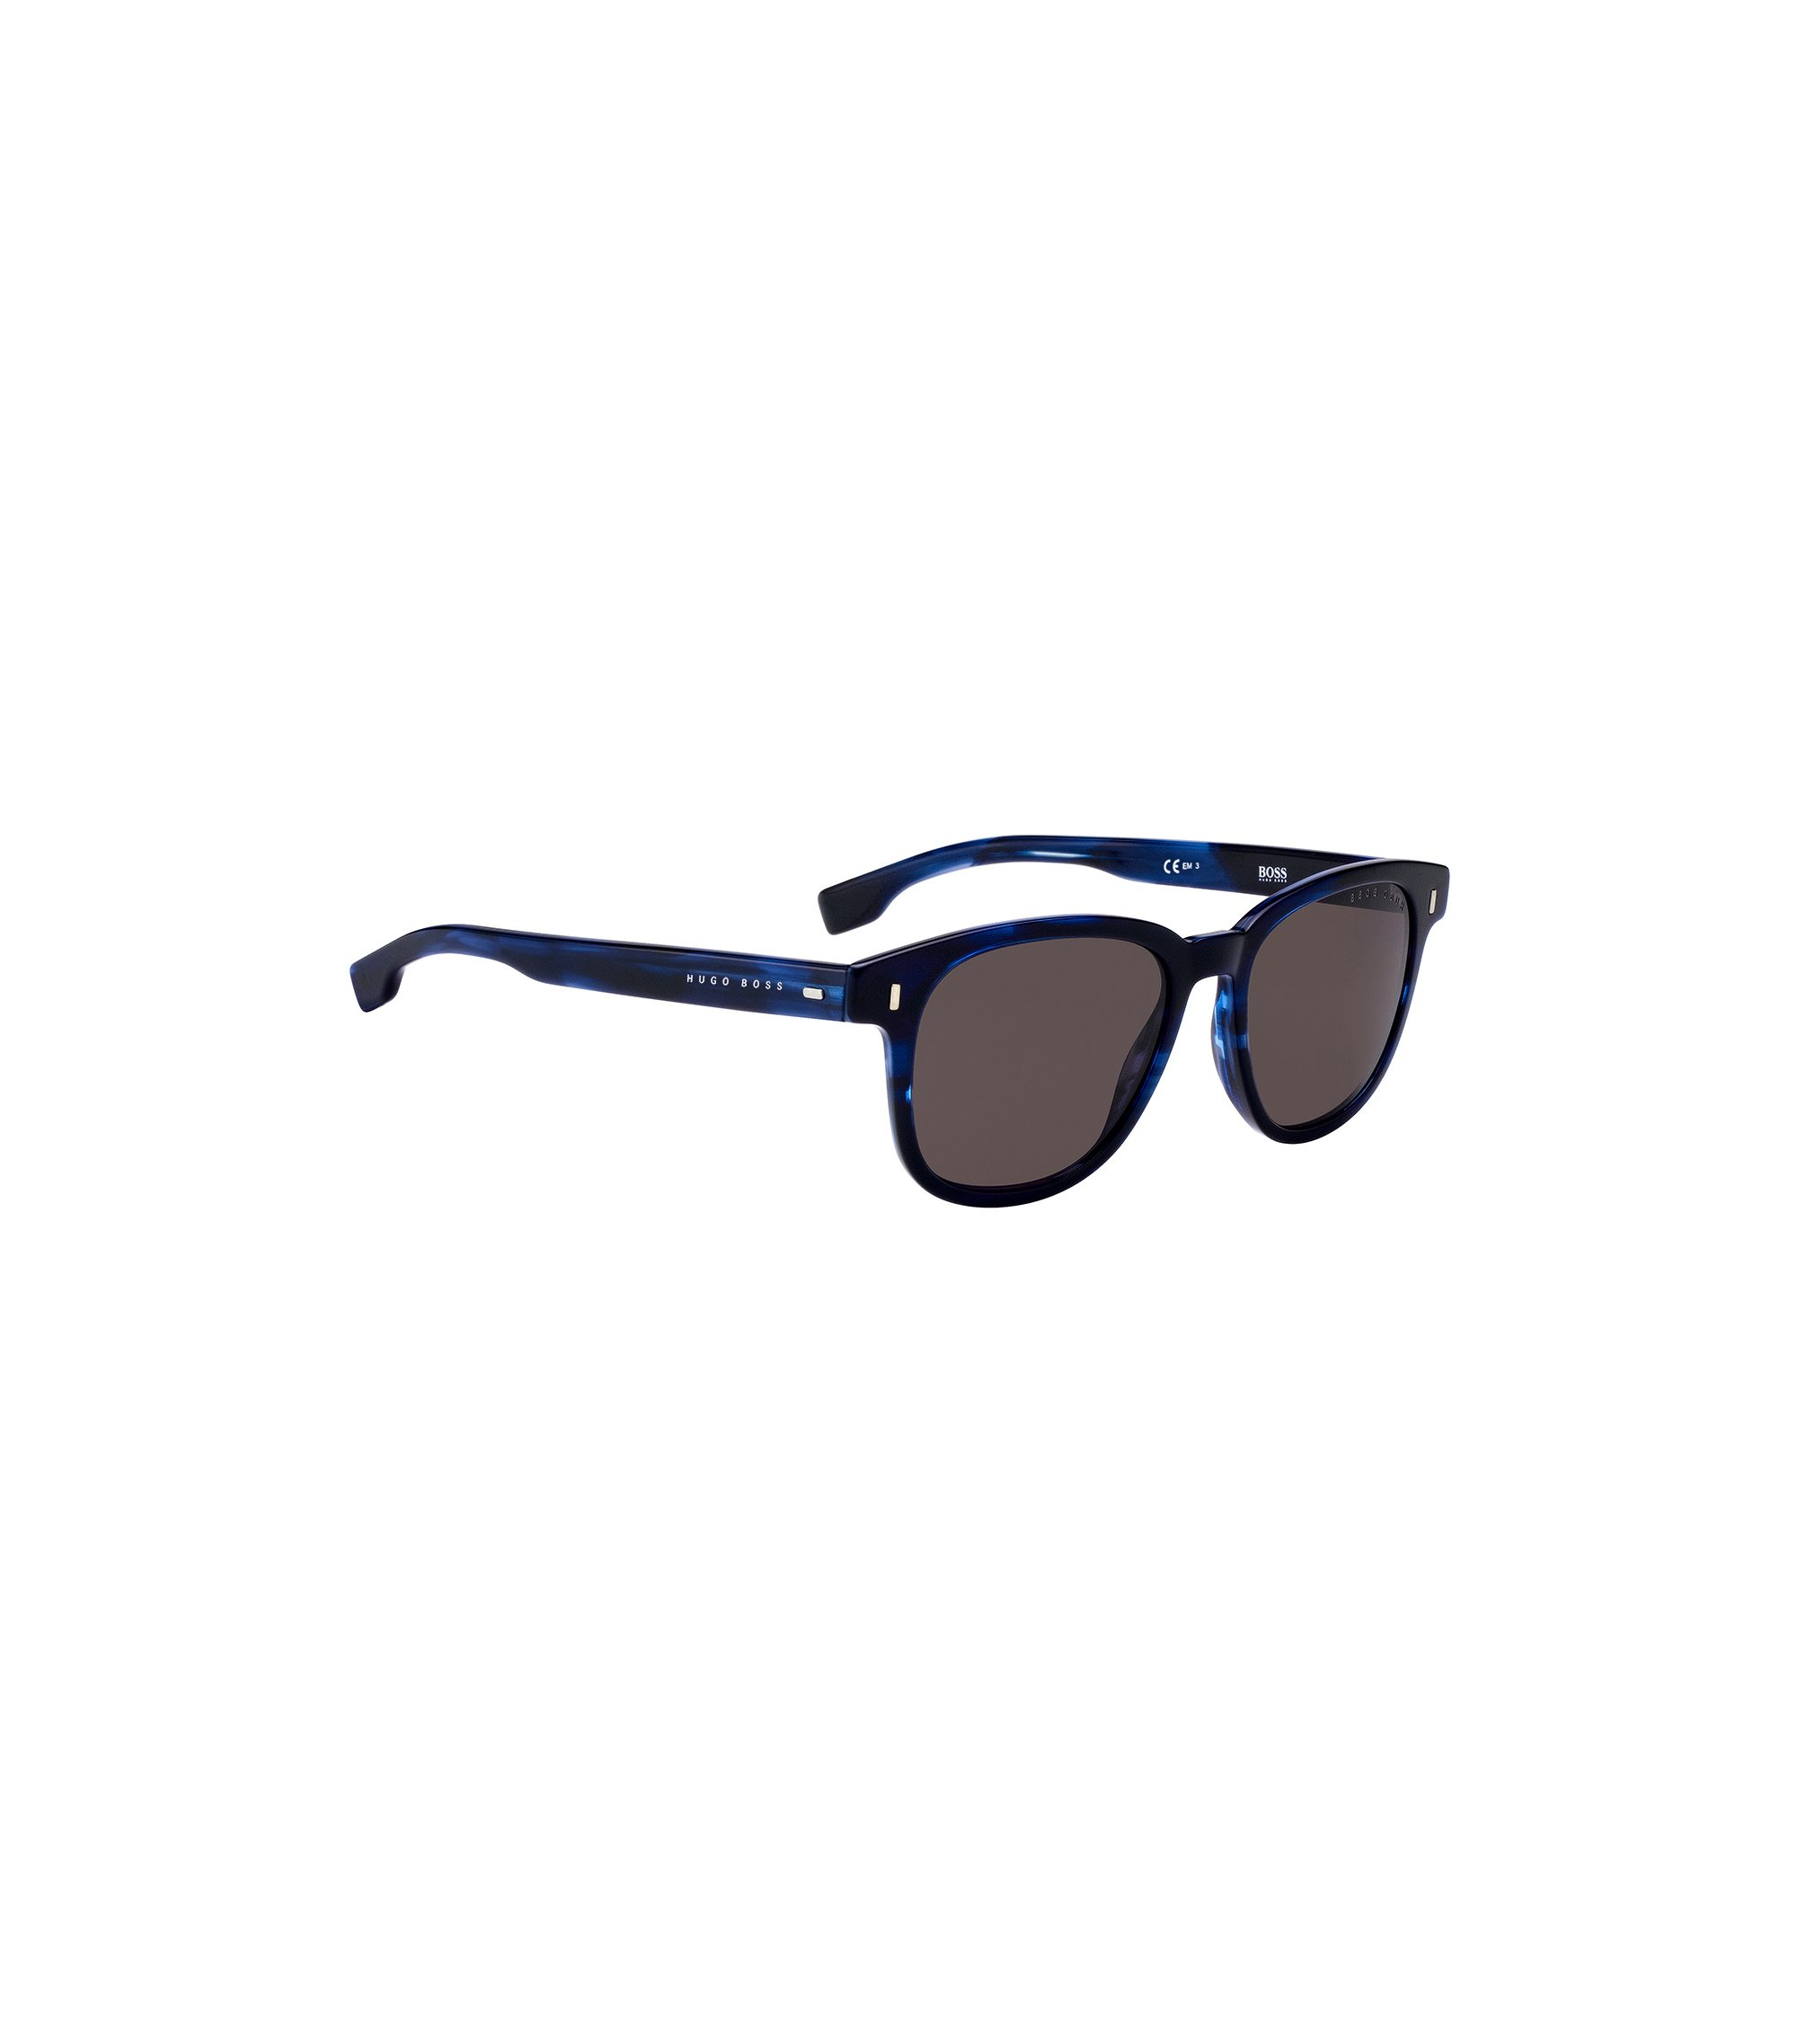 Occhiali da sole blu in acetato con motivo Avana, Assorted-Pre-Pack